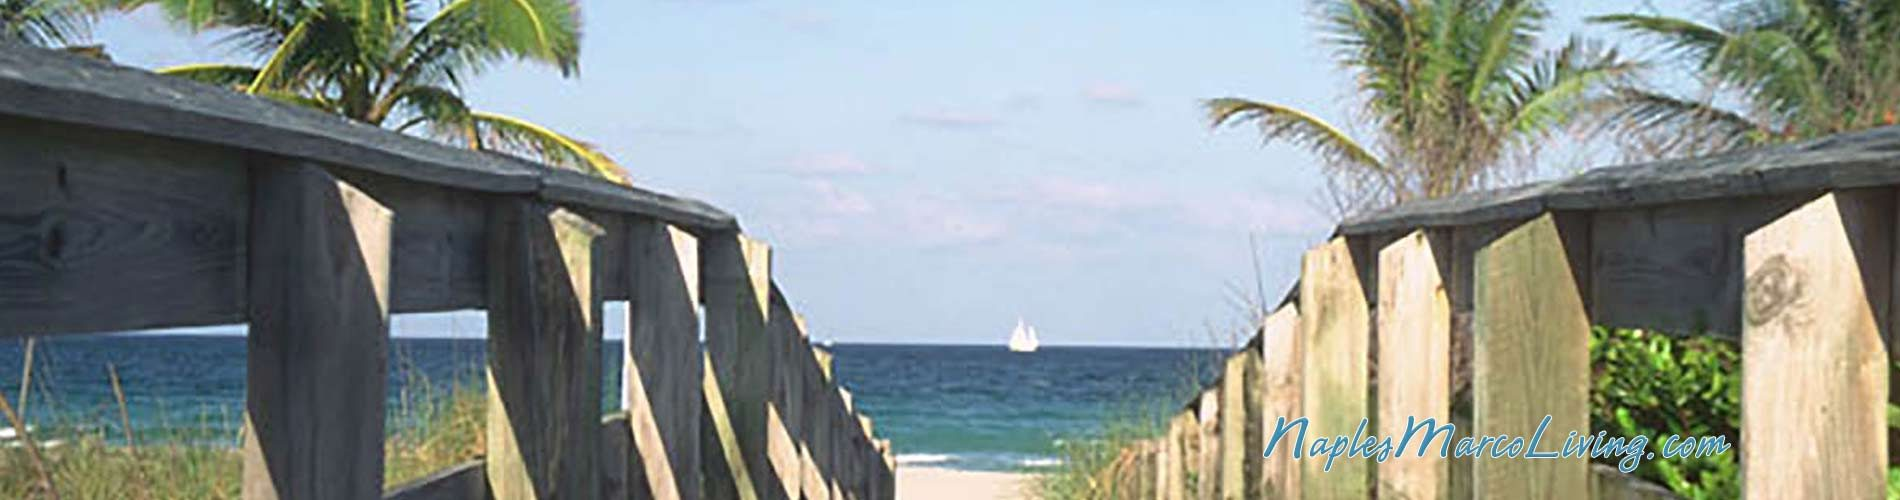 Visit Naples FL Beach Condo Luxury Resort Spa Vacations Country Clubs Golfing